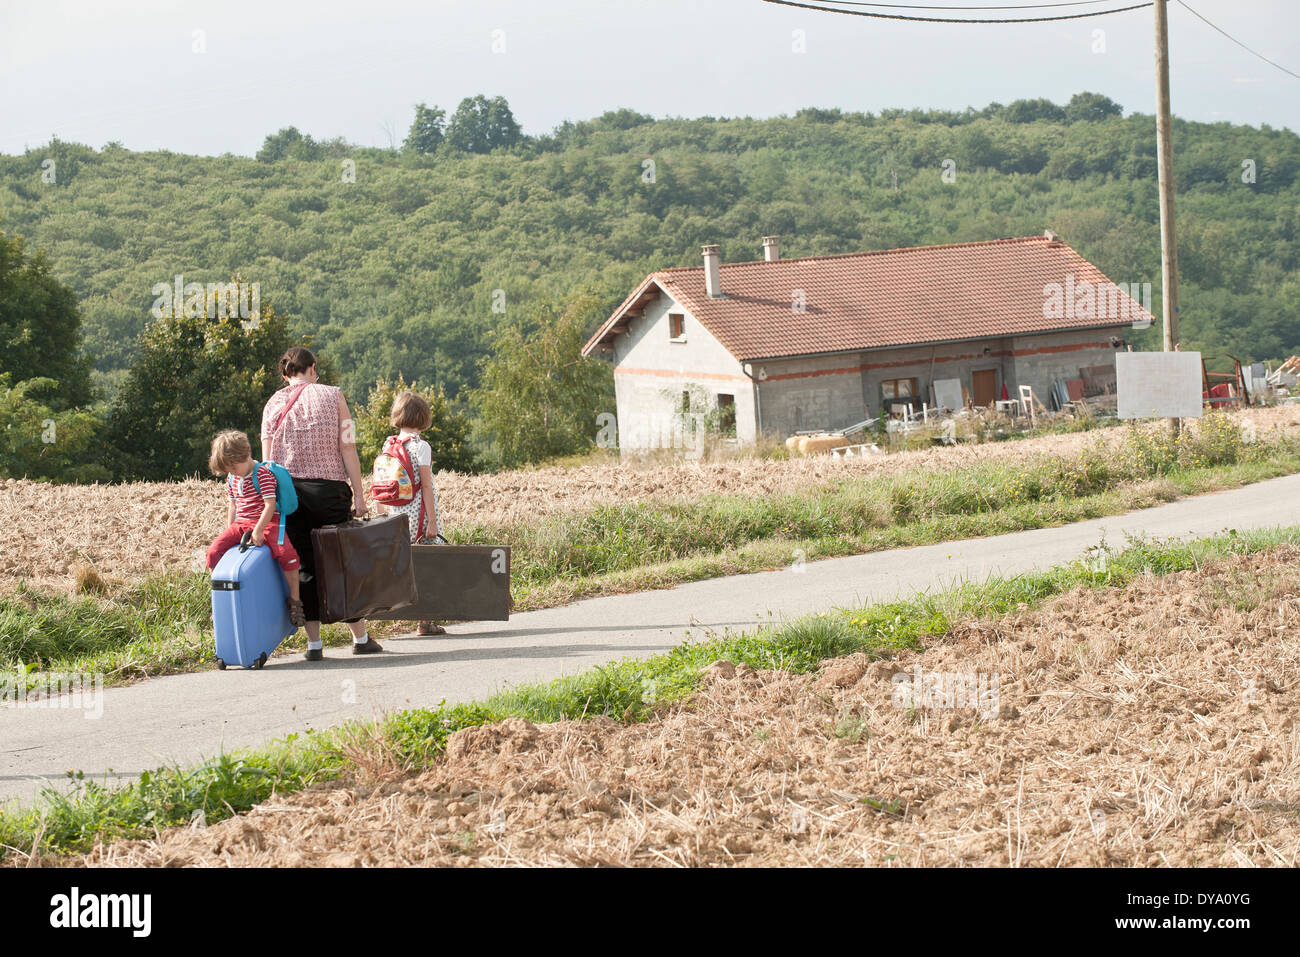 Mother and children wandering through countryside, dragging suitcases behind them - Stock Image